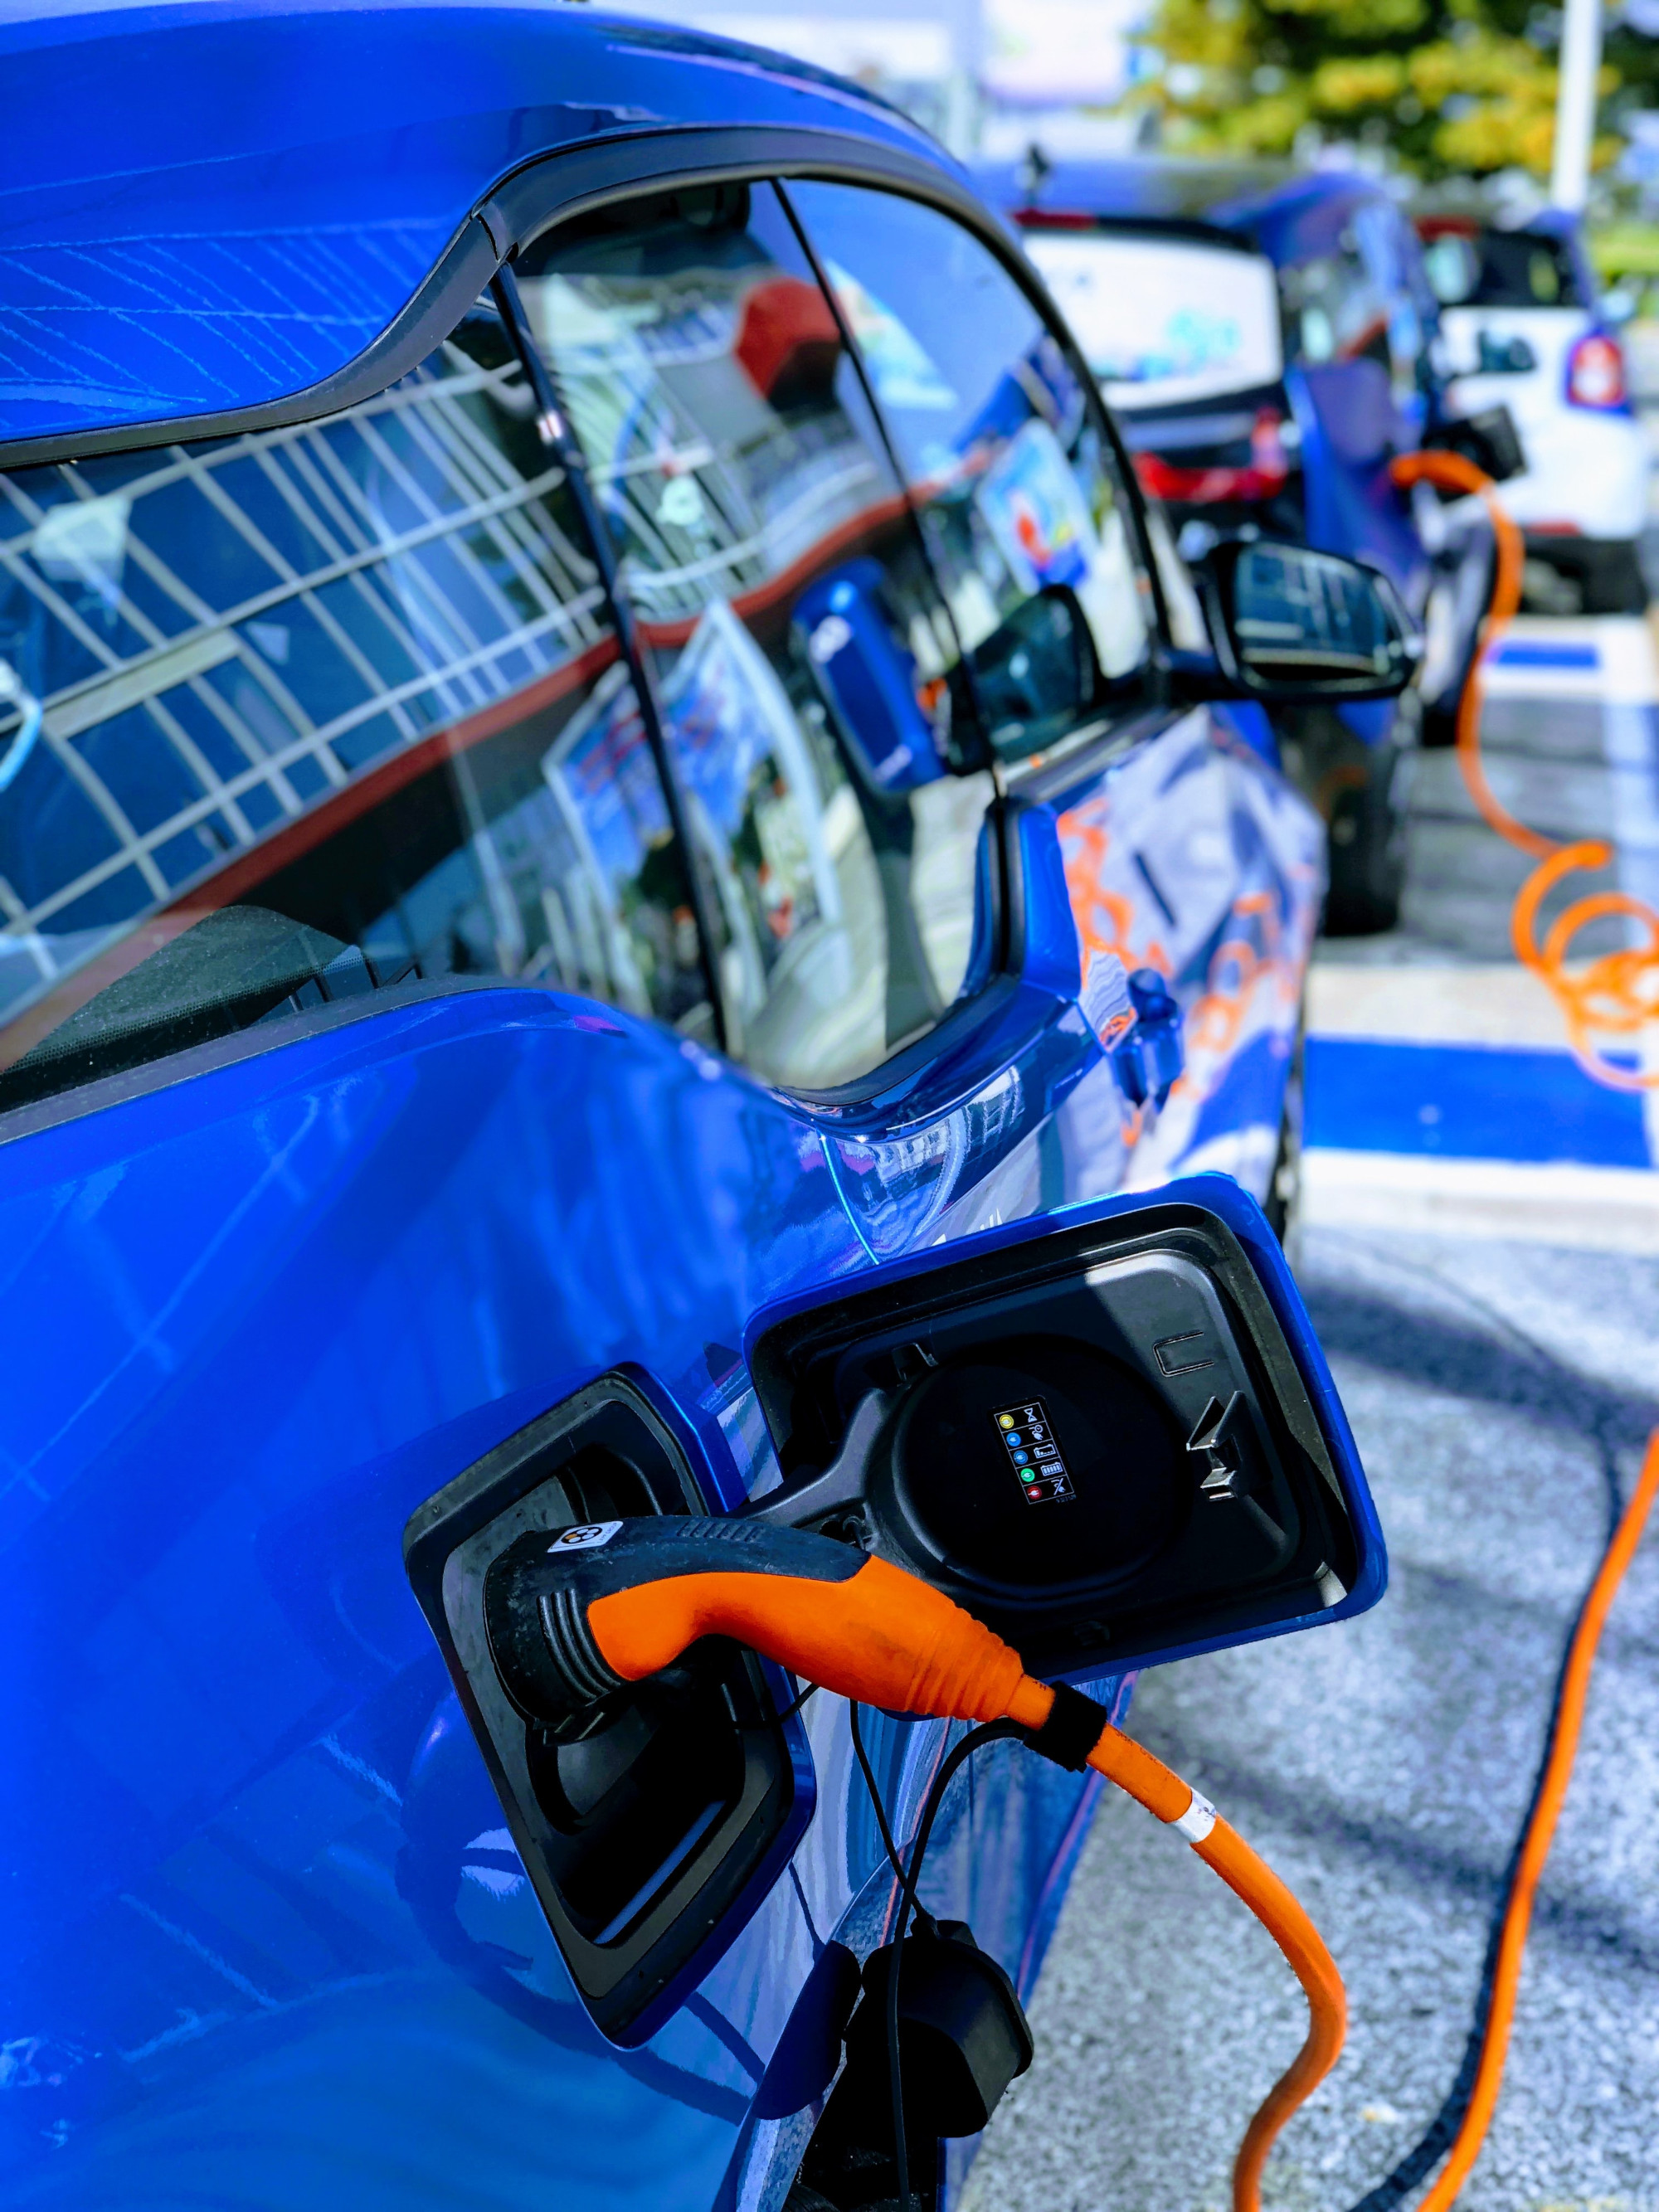 Close up of two blue electric vehicles being charged with an orange cable